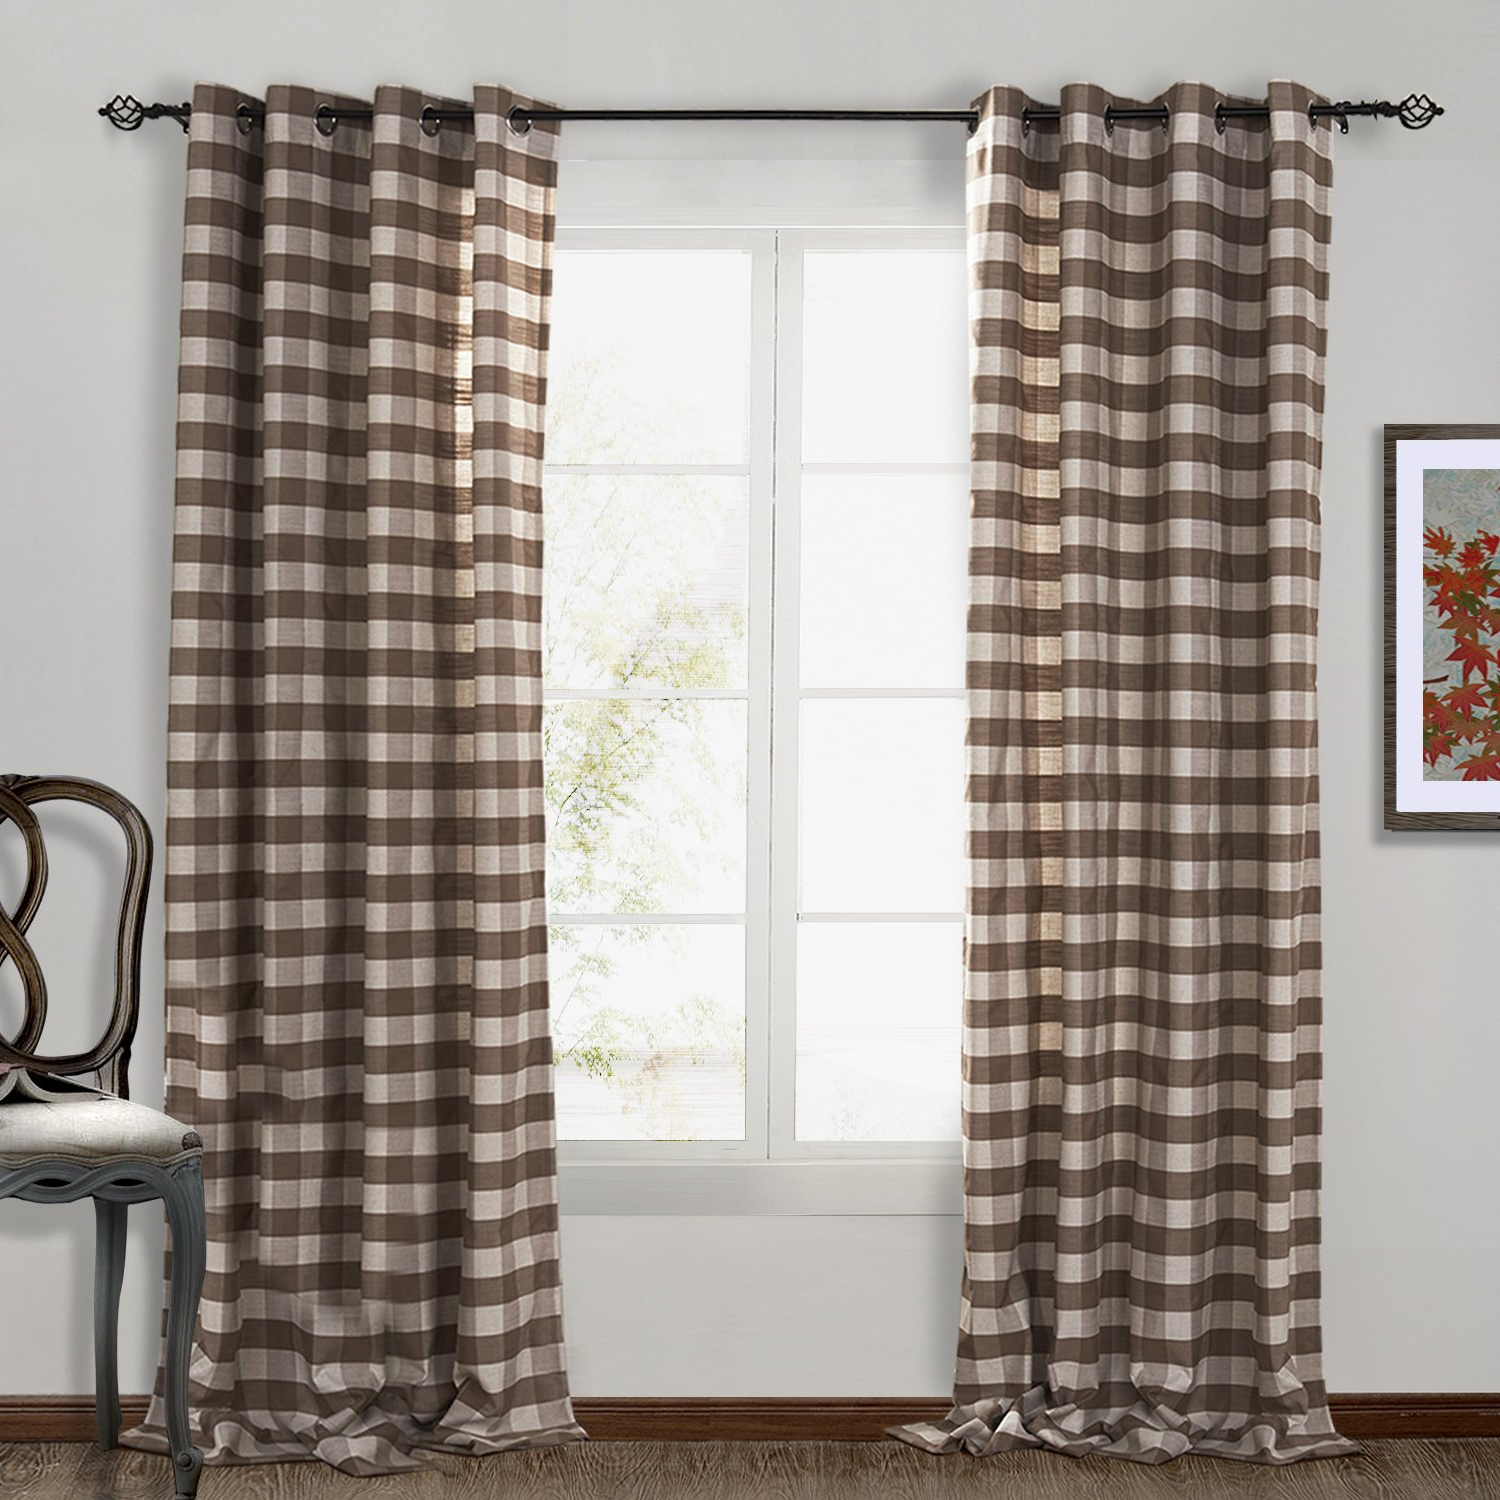 Most Current Chadmade Eco Friendly Premium Country Classic Check Plaid Cotton Nickel Grommet Eyelet Window Curtain Panel Drapes (1 Panel) Light Brown 50wx96l Inch Inside Cotton Blend Classic Checkered Decorative Window Curtains (View 16 of 20)